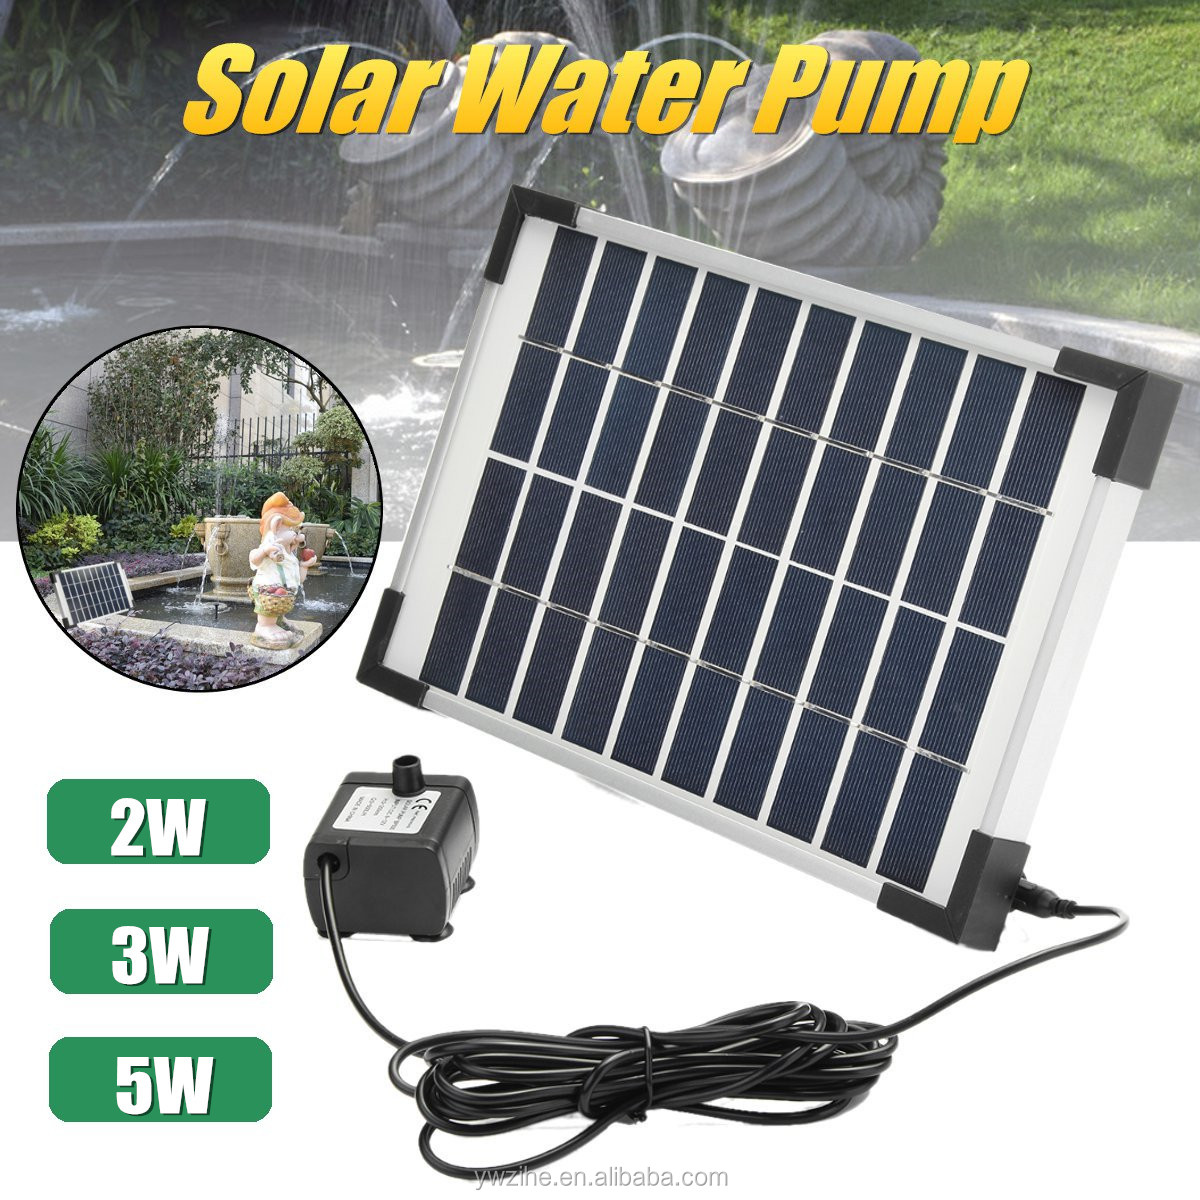 Solar Waterpomp Power Panel Kit Zwembad Dompelpompen Fontein Tuin Planten Watering Power Fontein Vijver Tuin Outdoor Decor